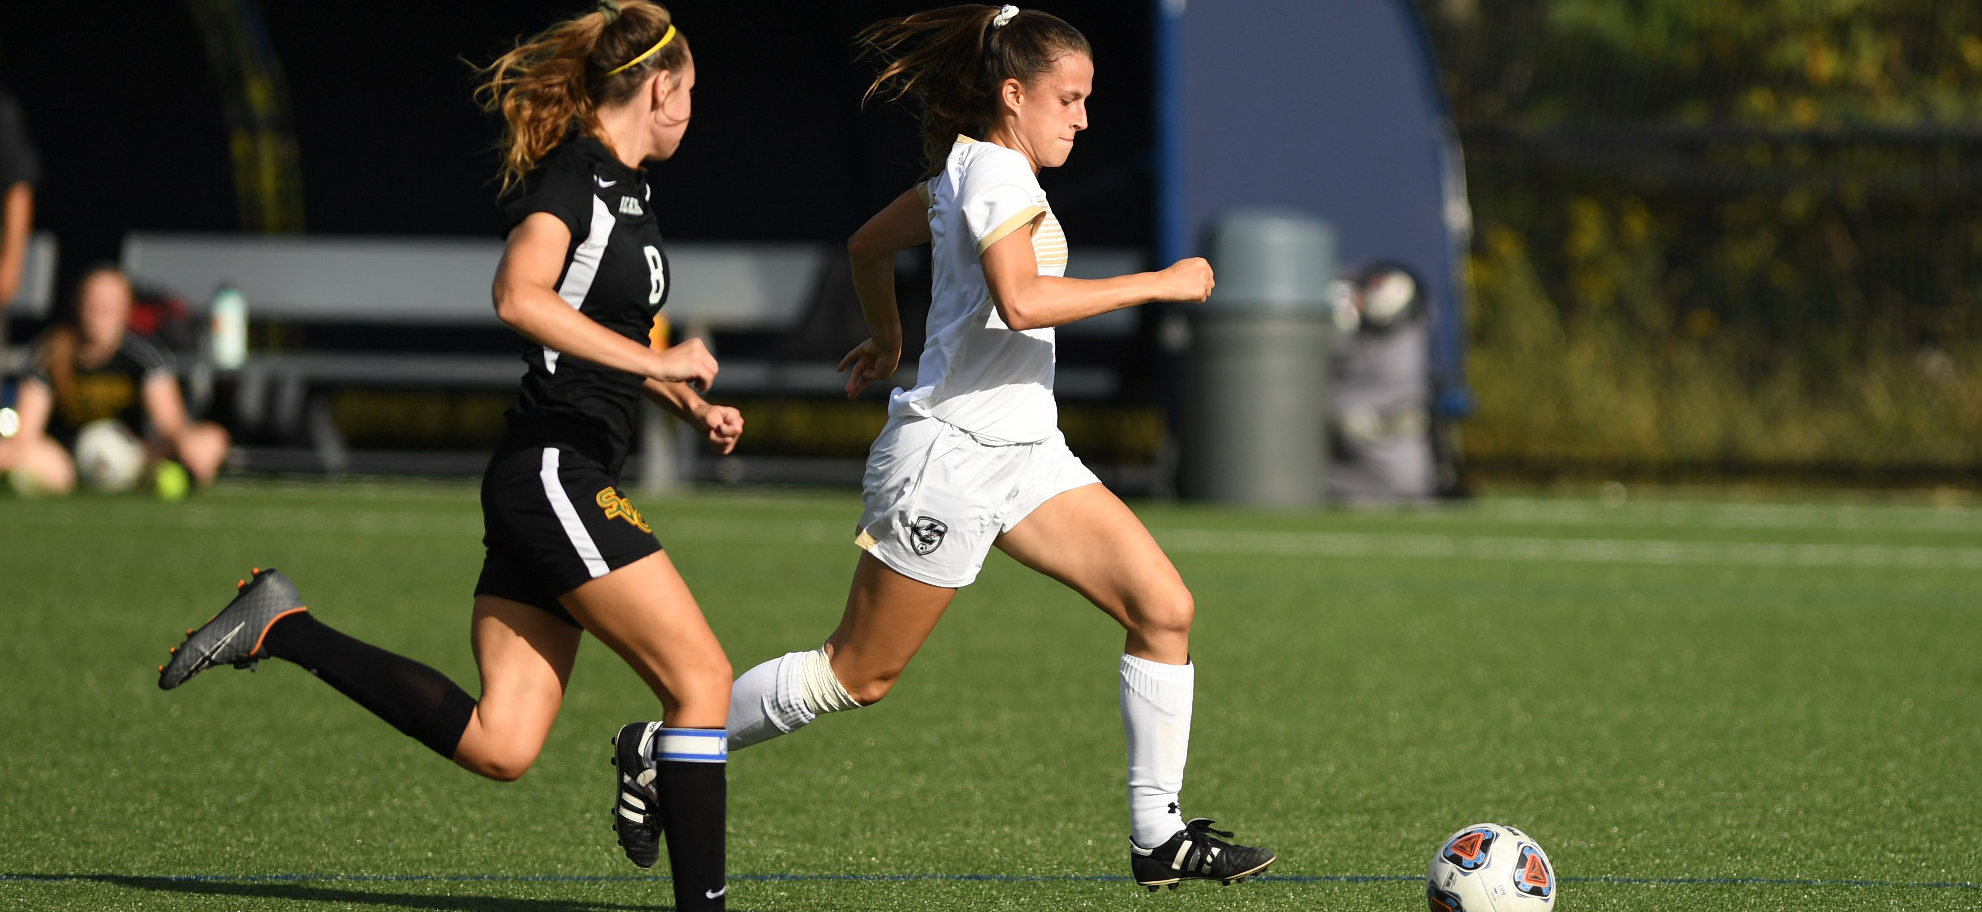 Meadow Walshaw-Wertz bagged her first career brace to help Juniata cruise past St. Vincent.